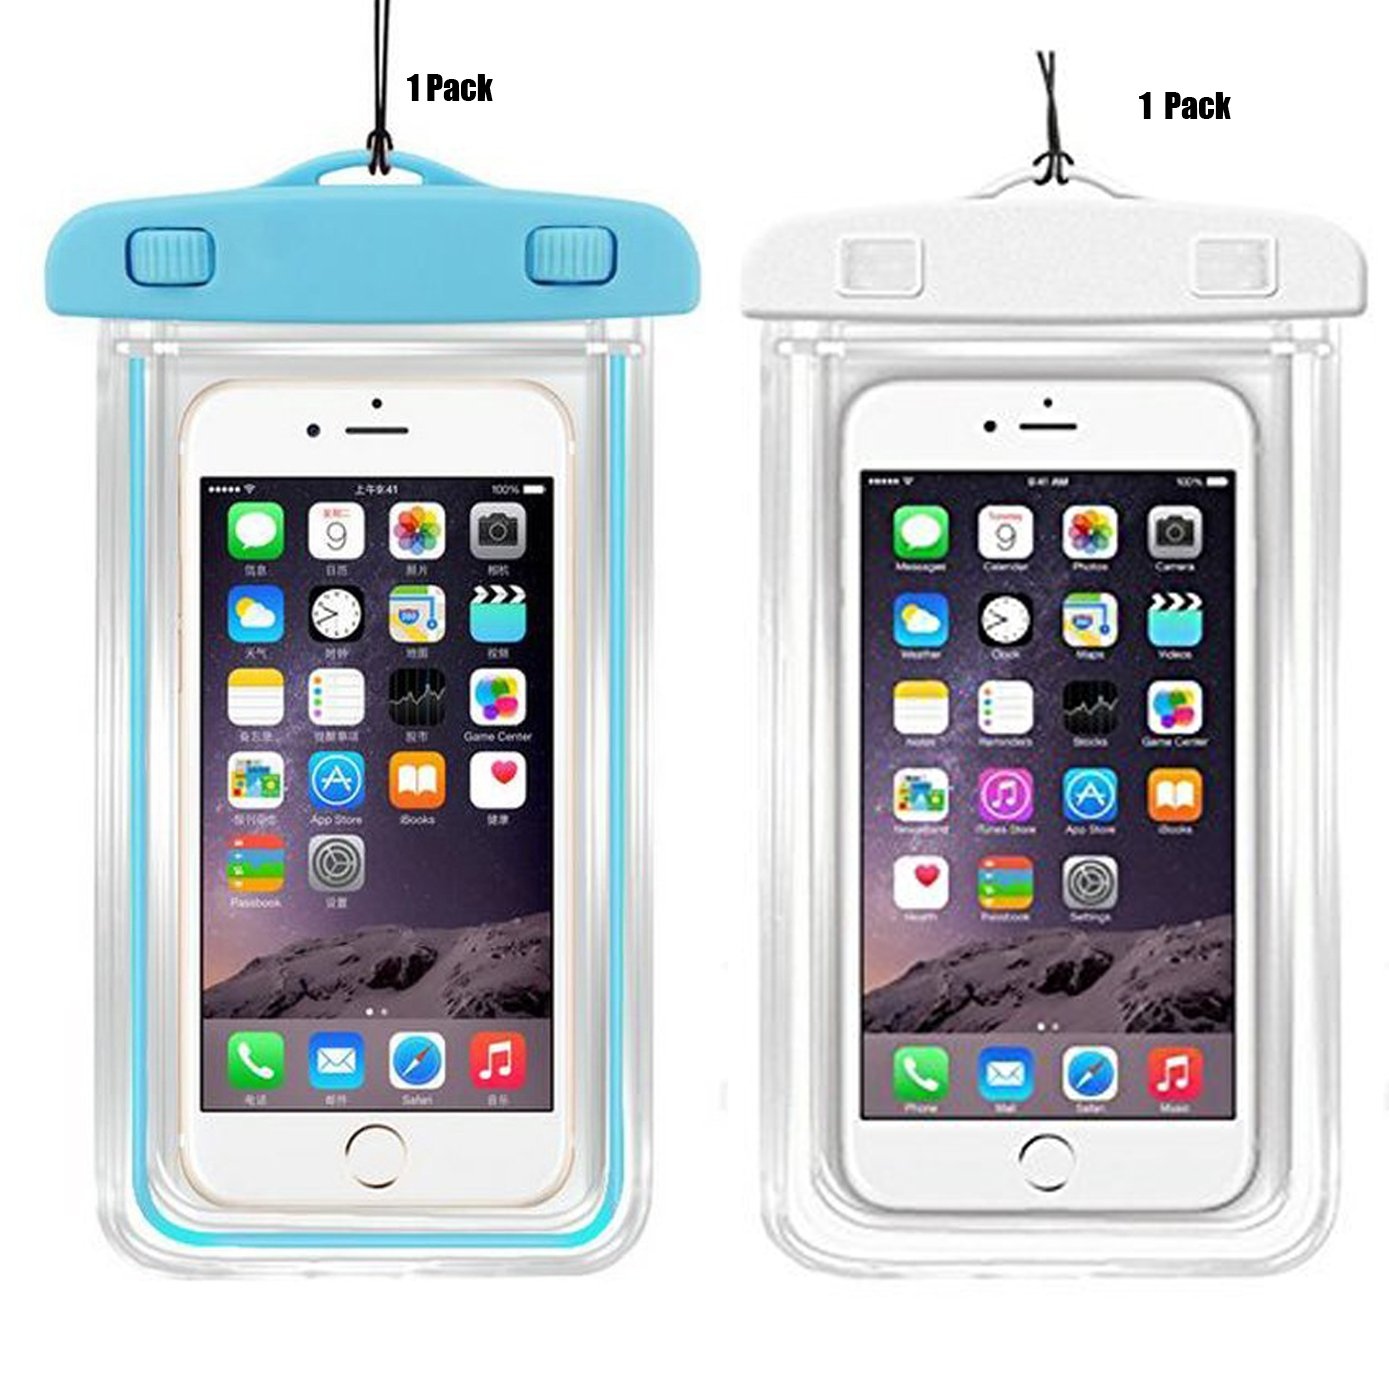 2Pack Universal Waterproof Case, CaseHQ Clear Transparent Cellphone Waterproof, Dustproof Dry Bag With Neck Strap for iPhone 8,8plus,7,7 Plus,6S,6S Plus,google pixel,and All Devices Up to 5.8 Inches